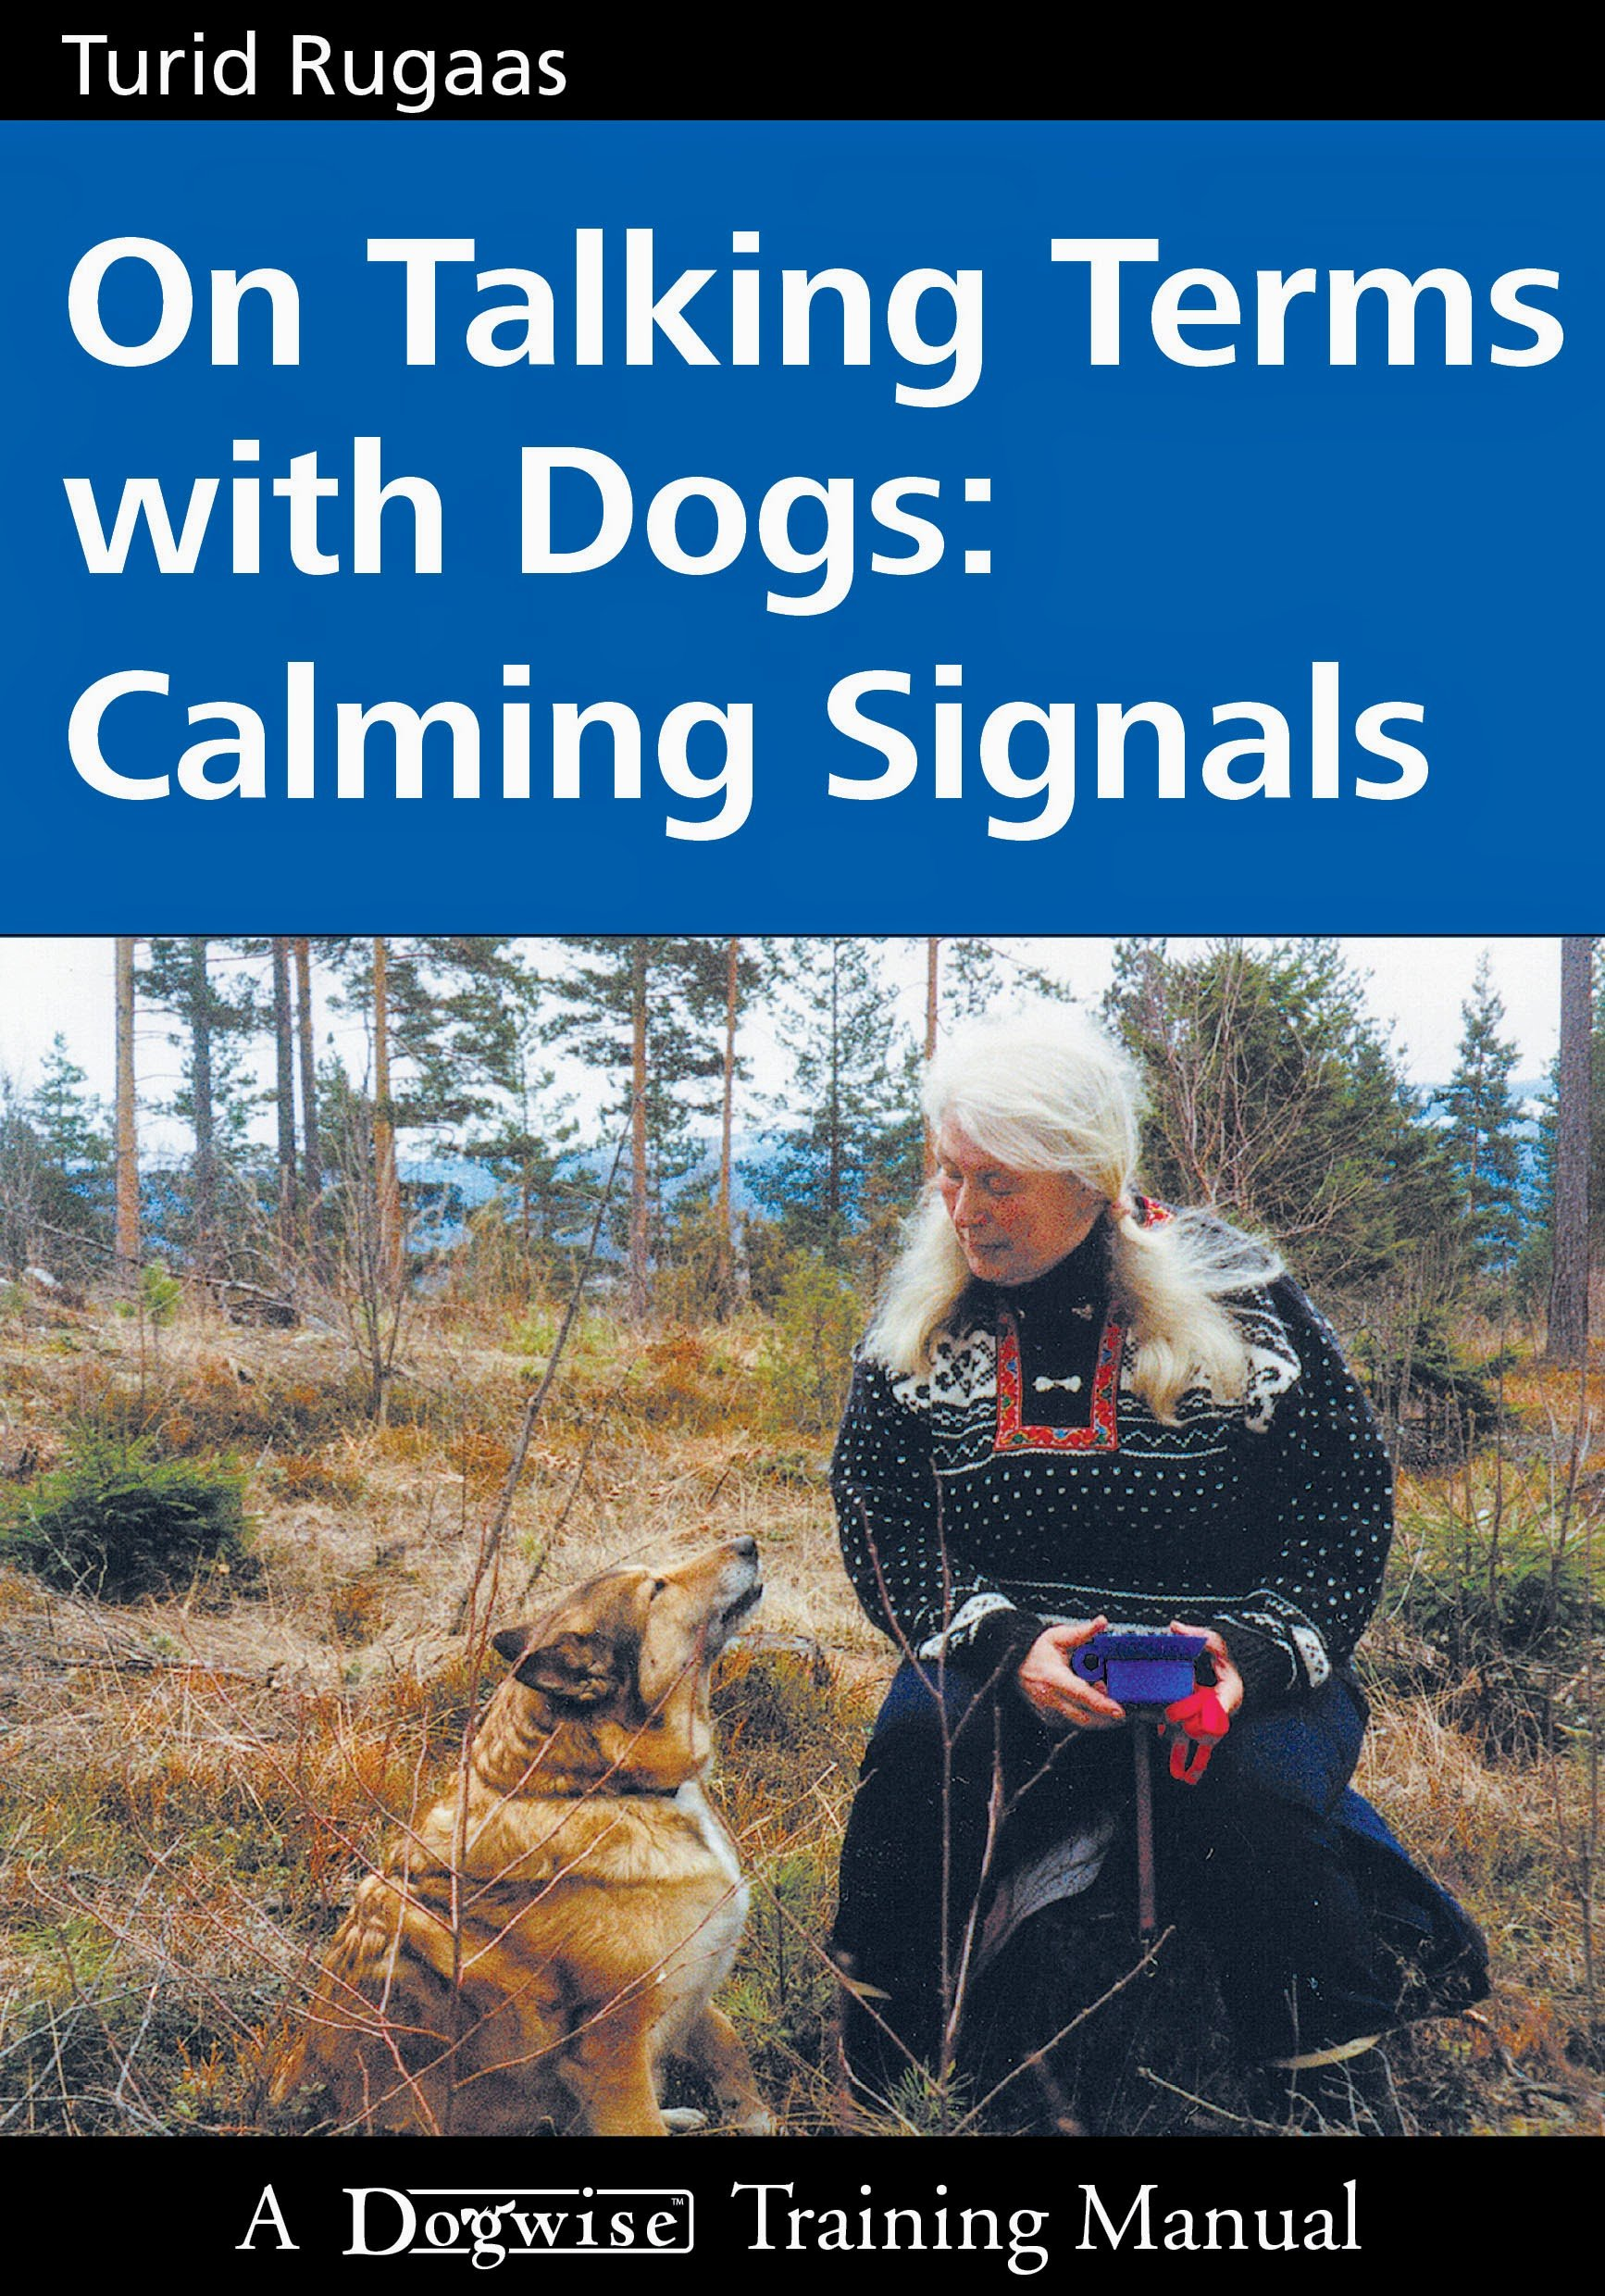 on talking terms with dogs calming signals turid rugaas